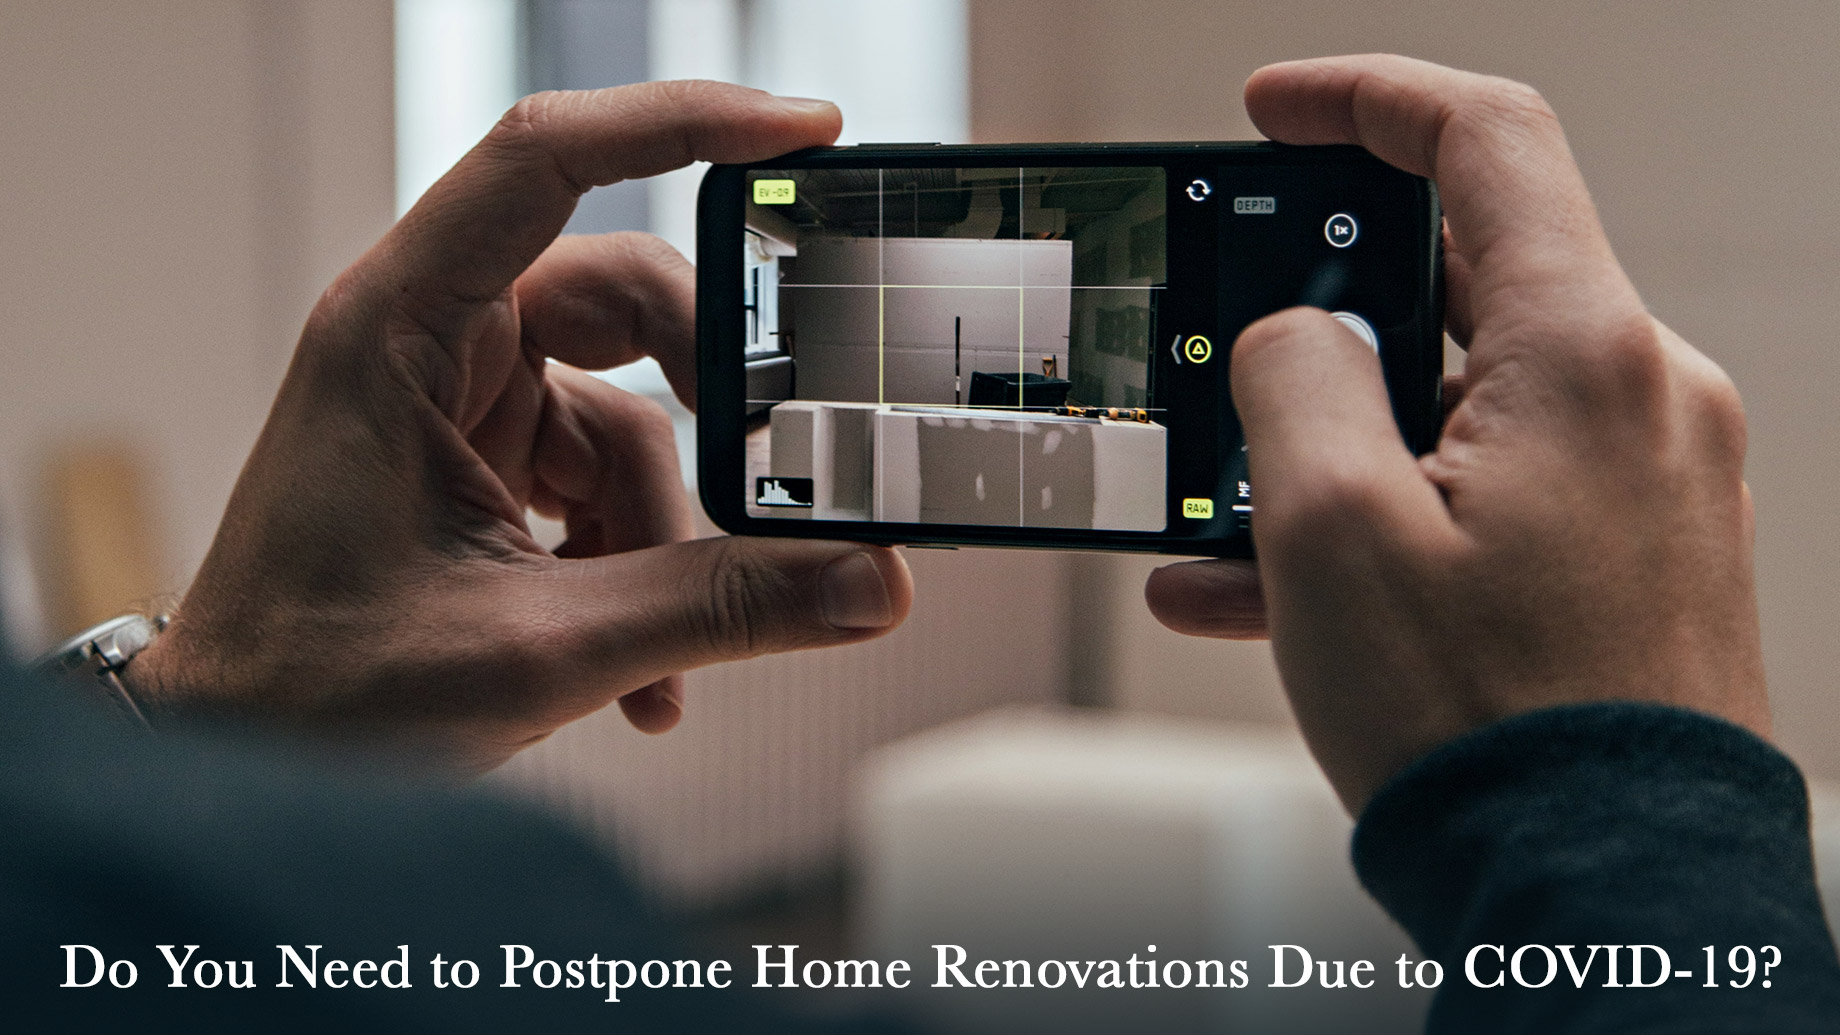 Do You Need to Postpone Home Renovations Due to COVID-19?